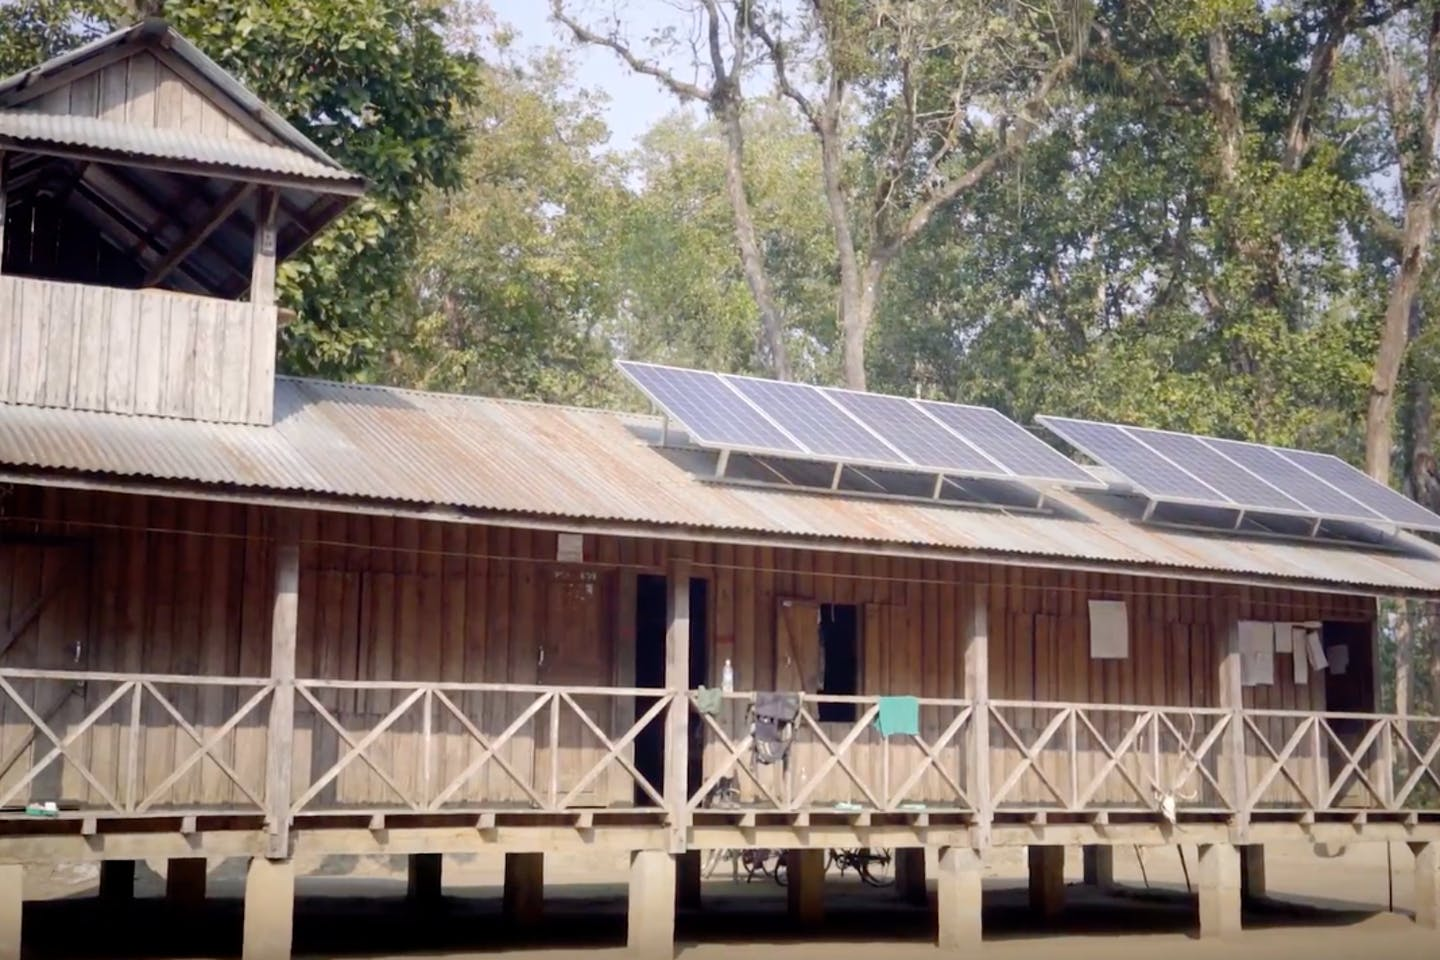 Solar energy empowers villagers and saves wildlife in Nepal